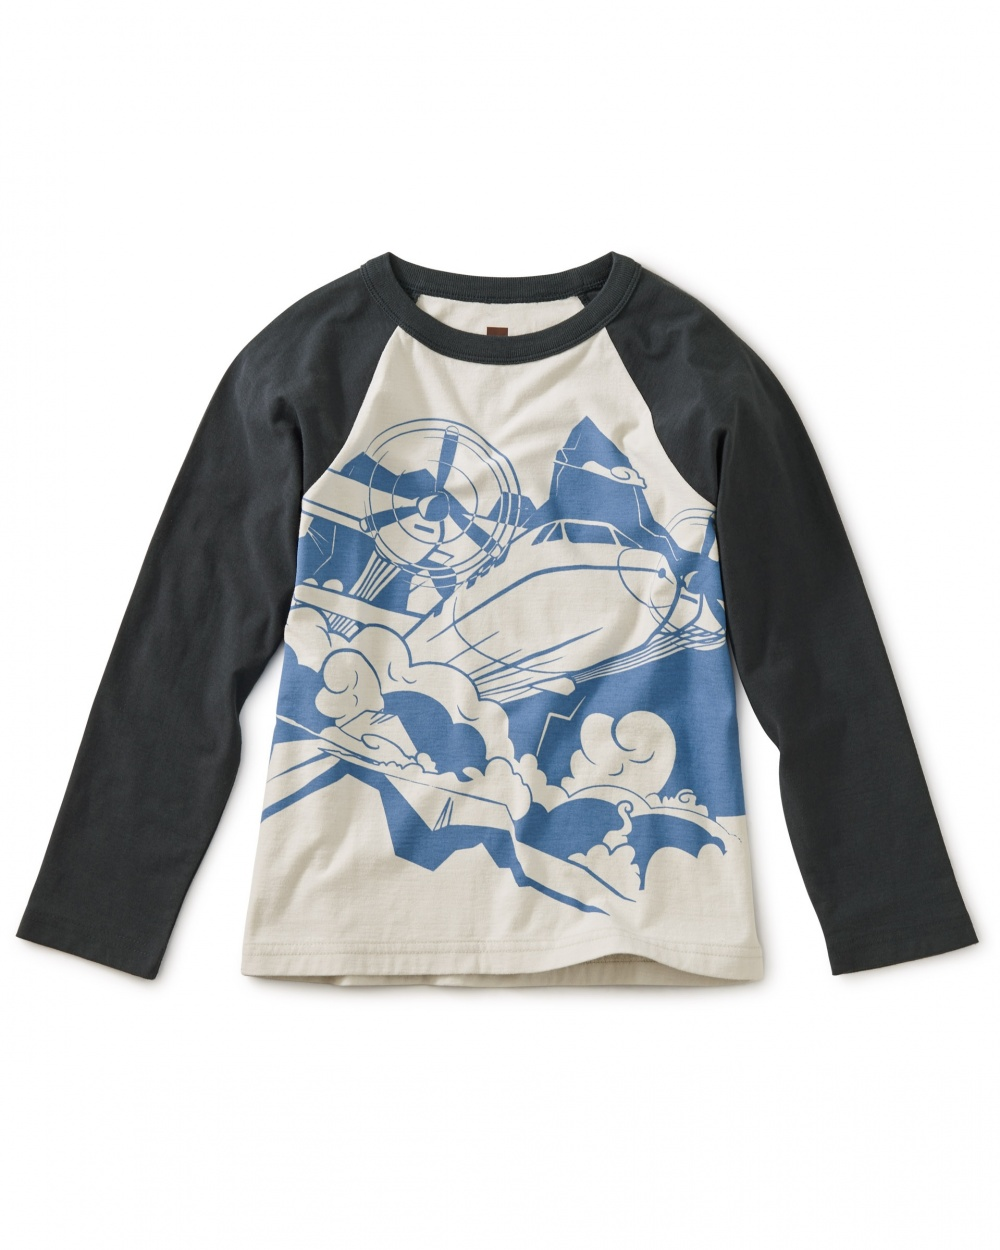 Turbo Prop Graphic Raglan Tee